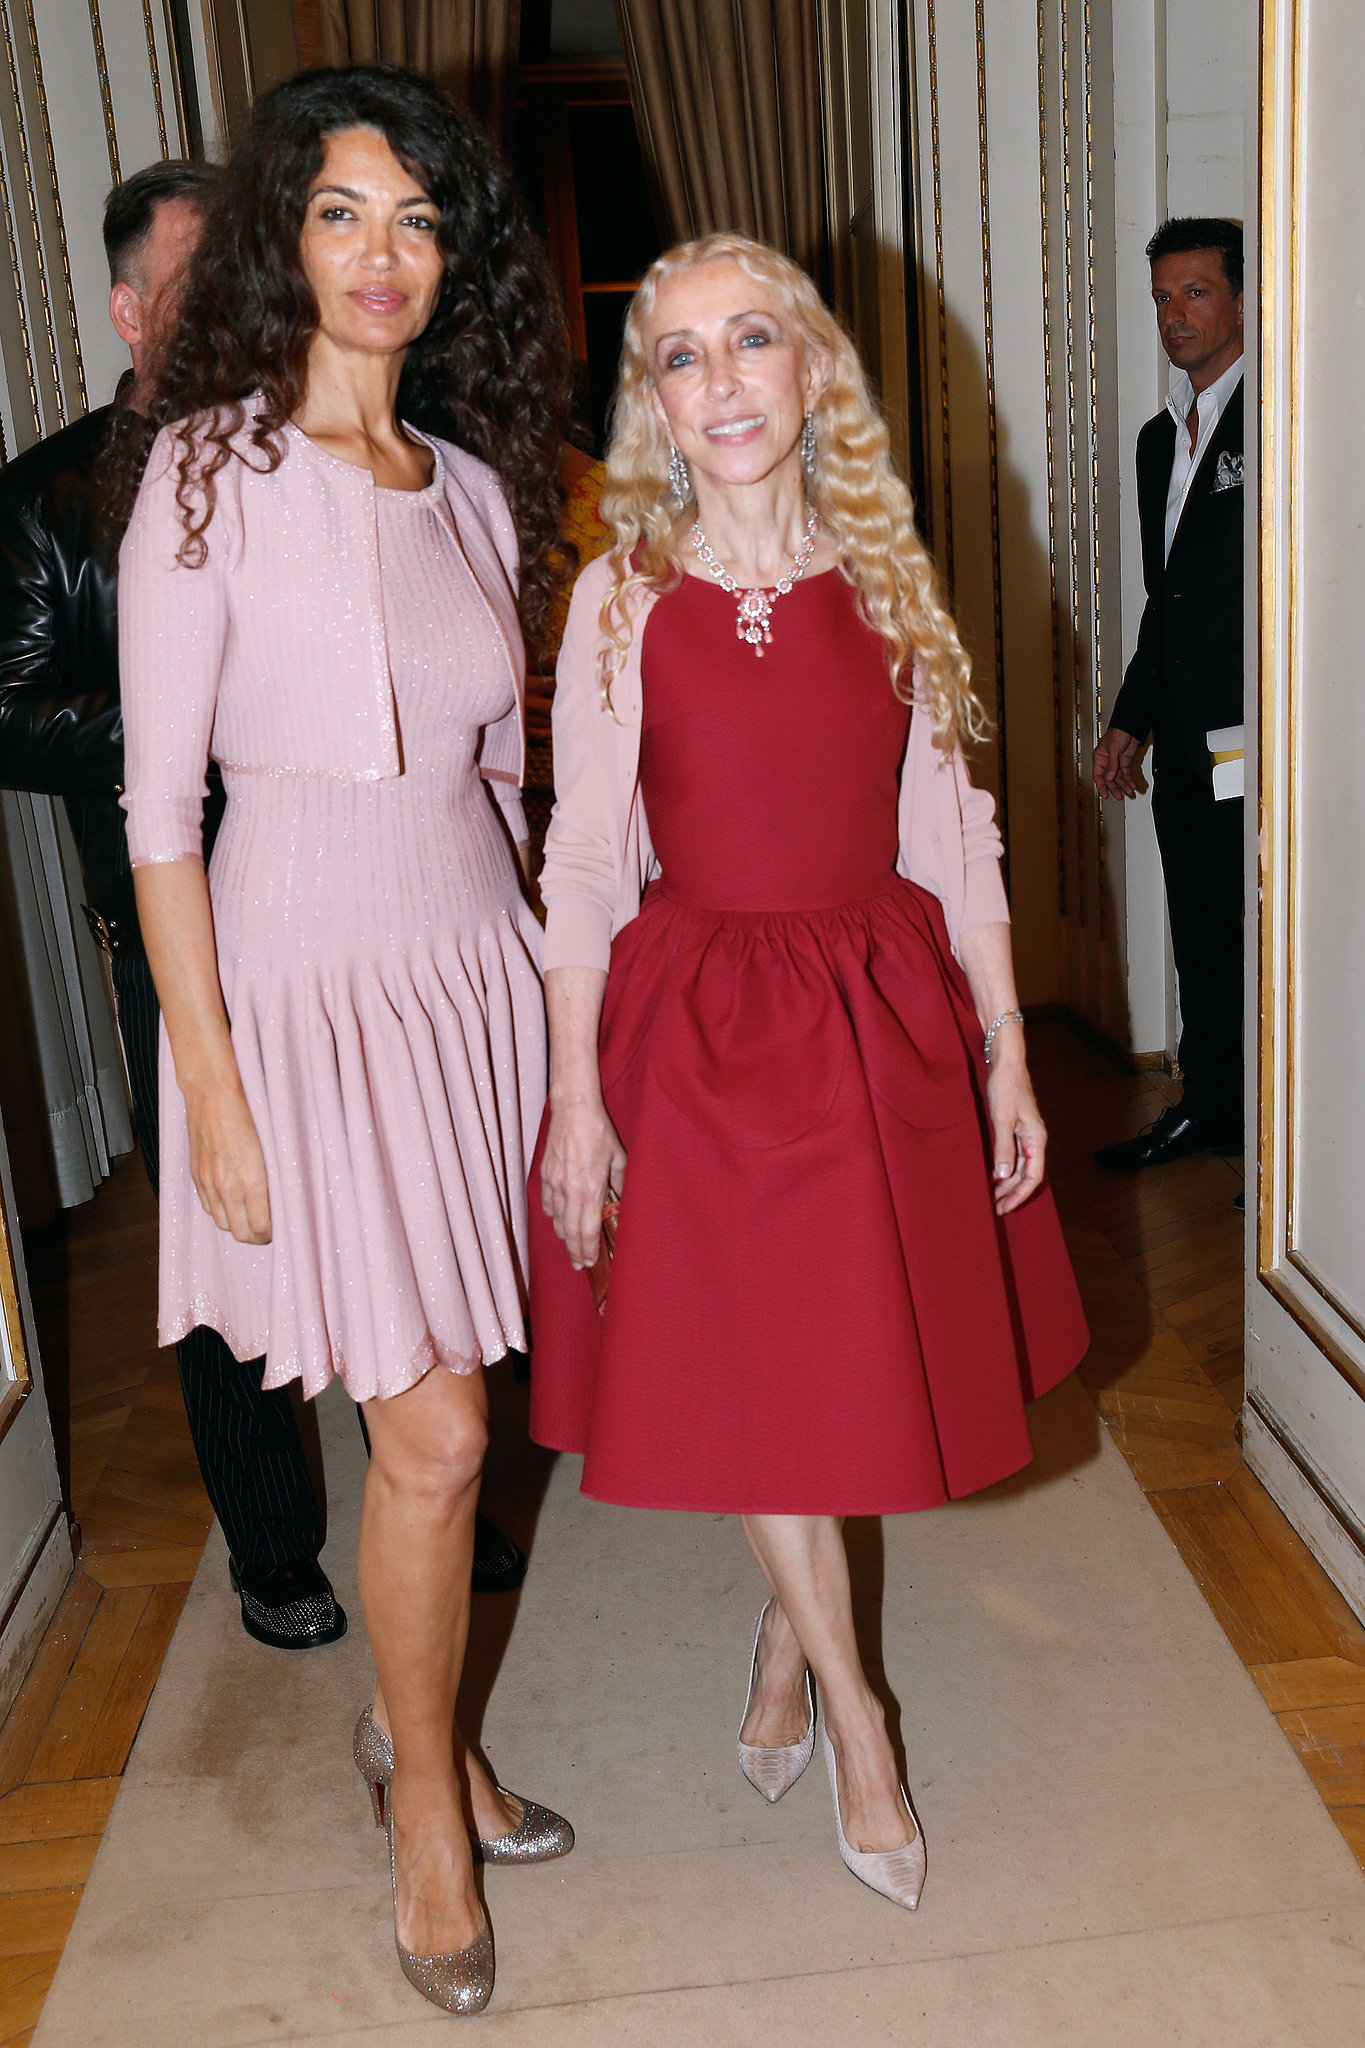 Afef Jnifen and Franca Sozzani made an entrance for the Atelier Versace runway show in Paris.